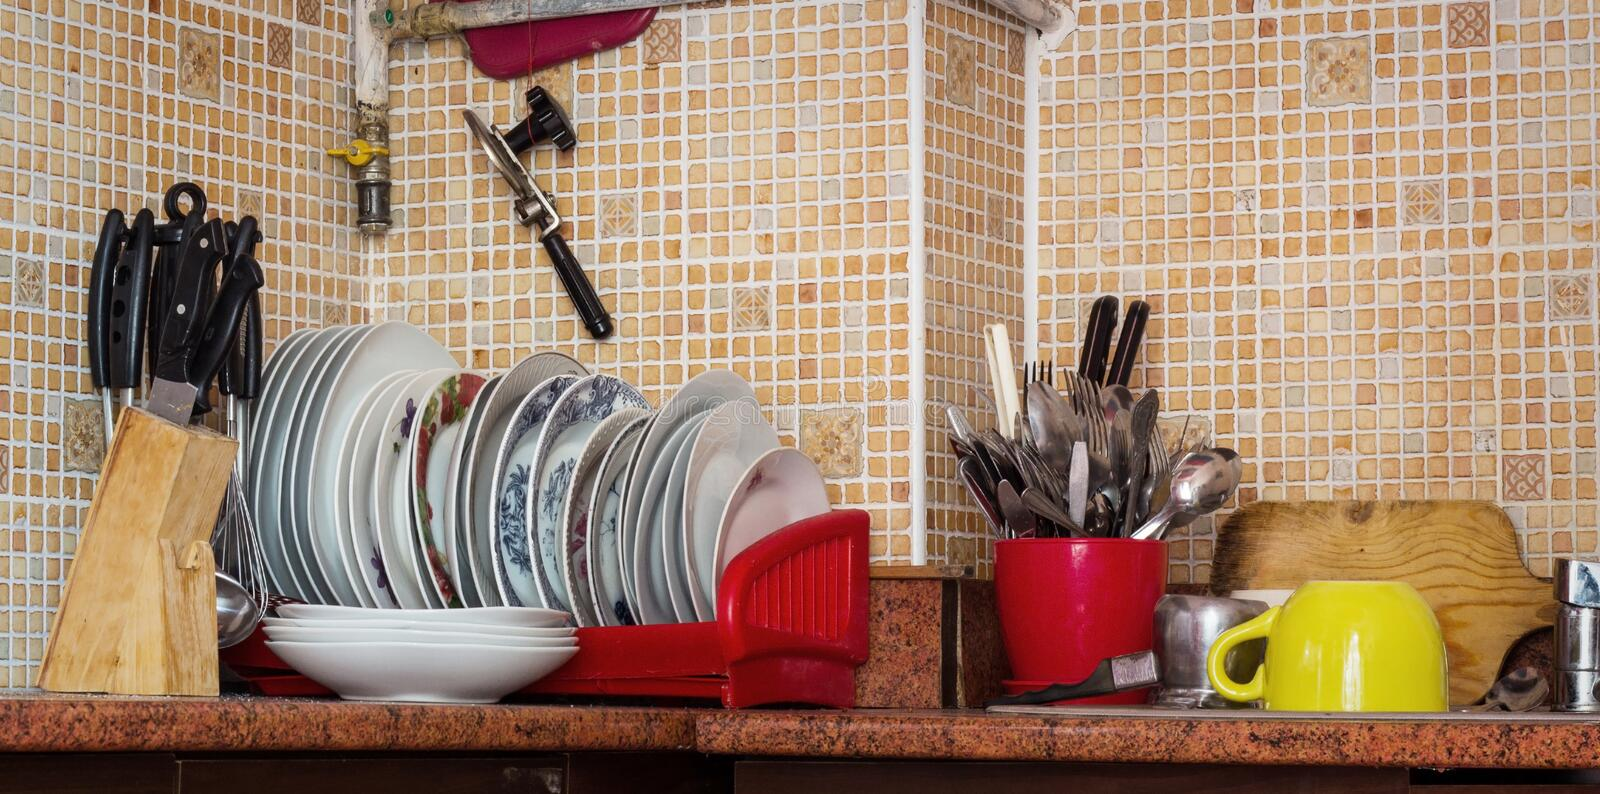 Download Kitchen stock photo. Image of tool, bowl, crockery, traditional - 34444036